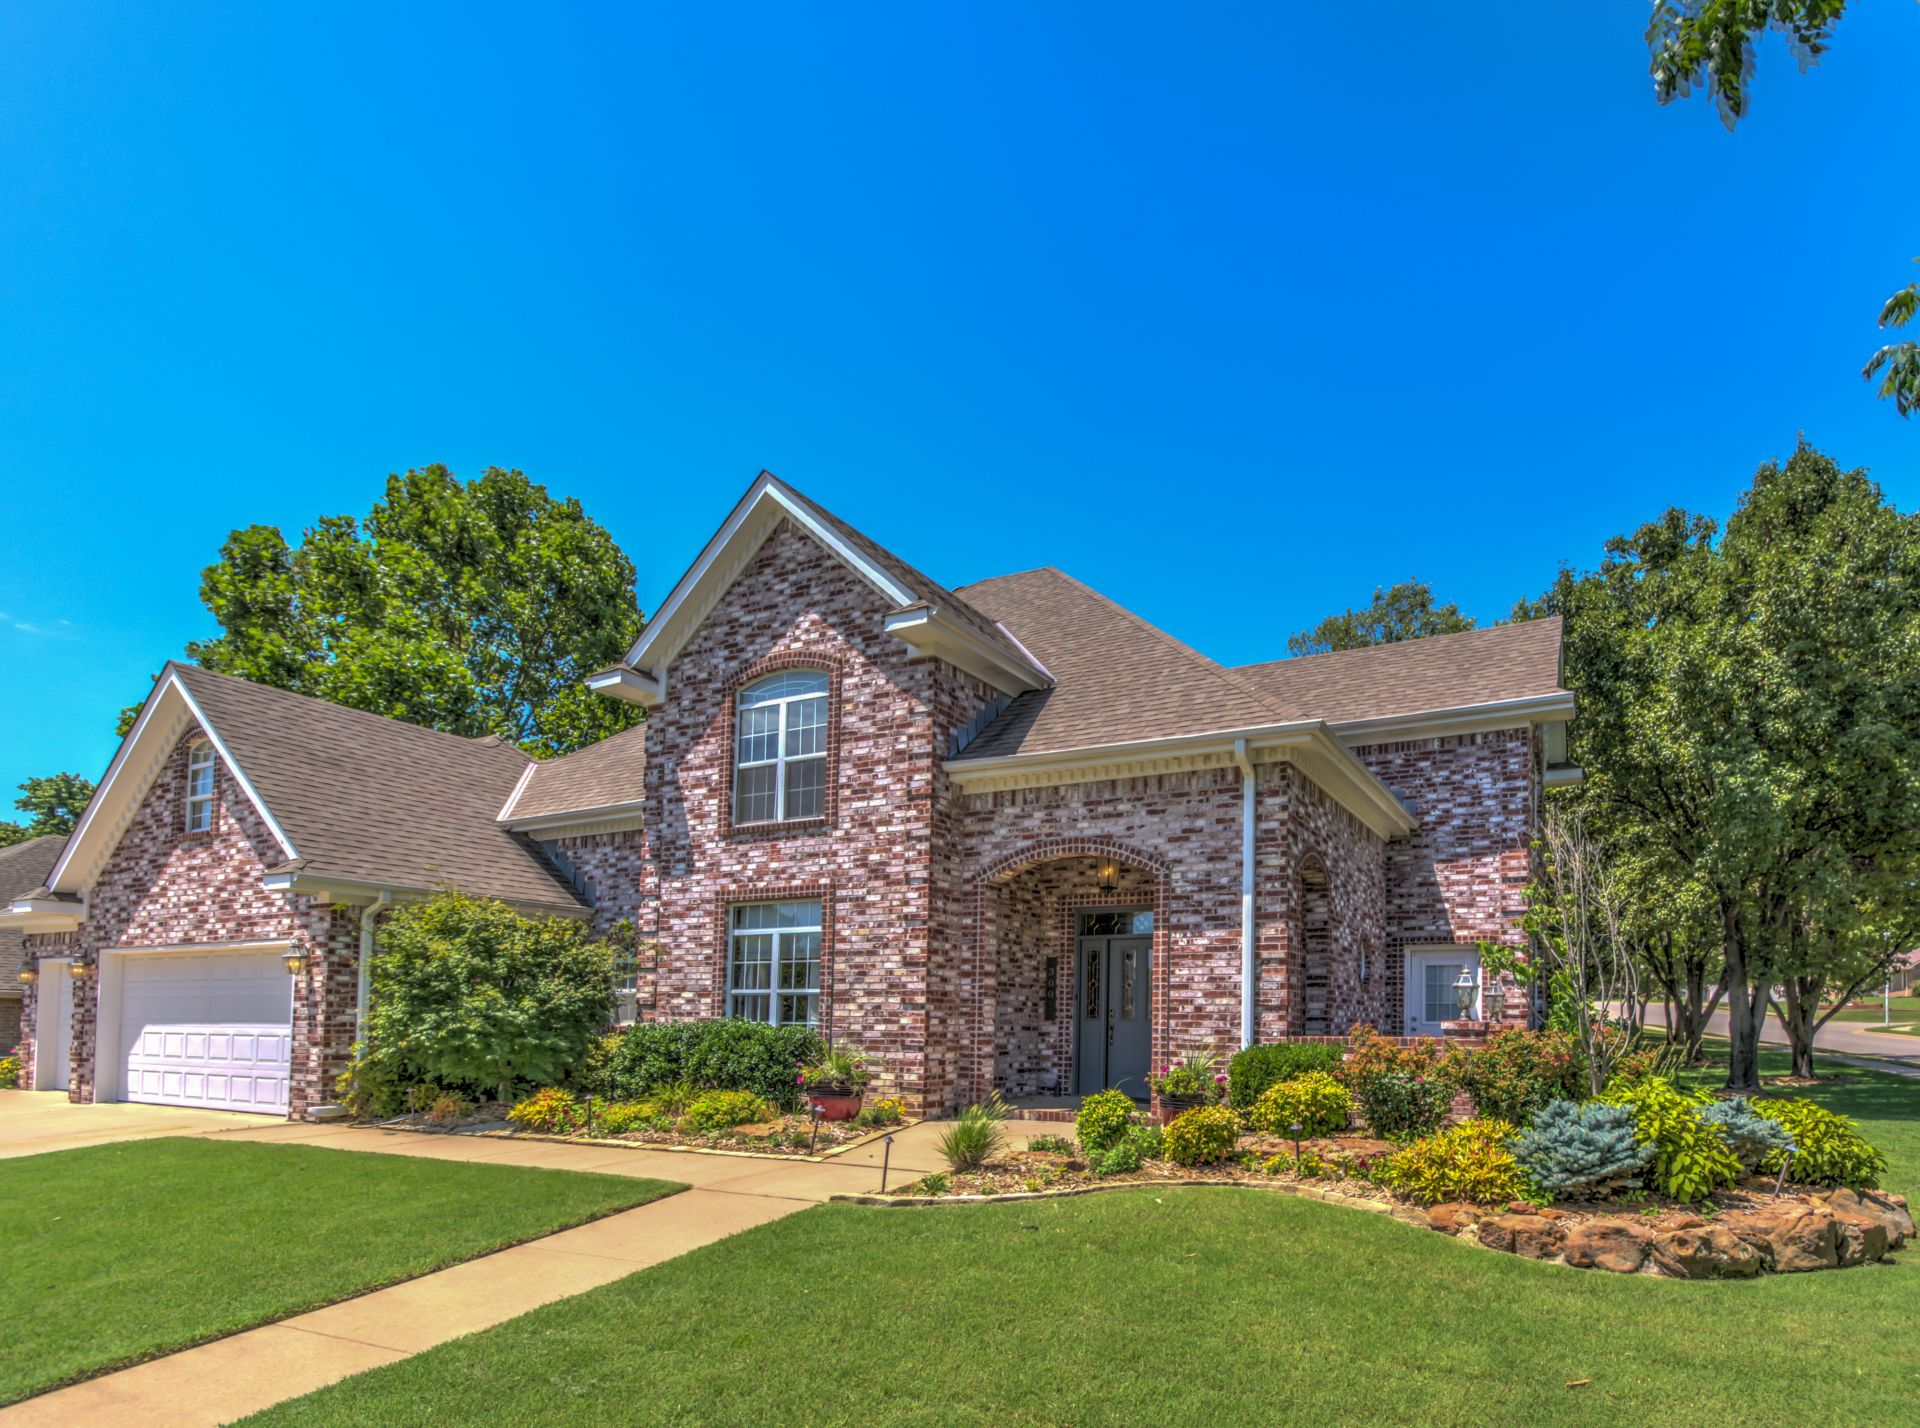 3001 Kingston Drive, Bartlesville, Oklahoma